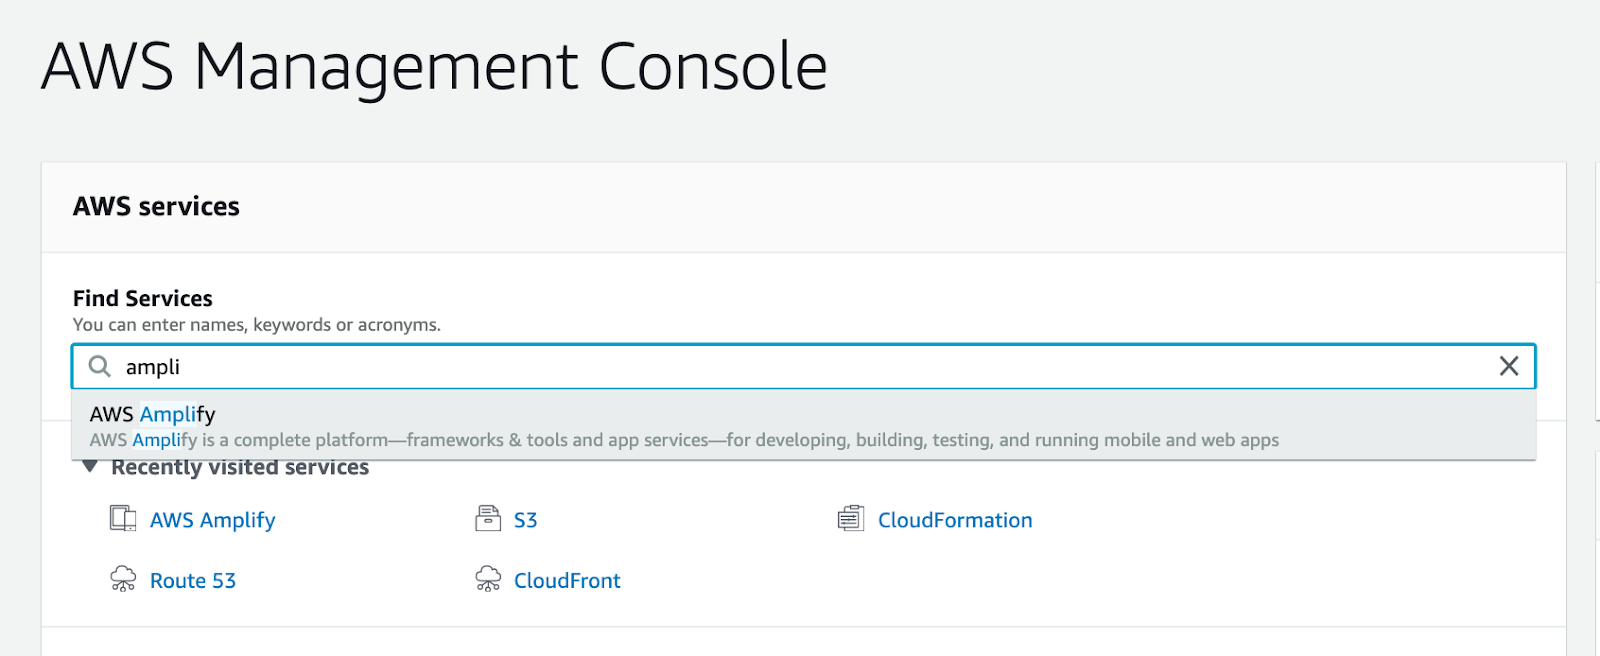 Finding the AWS Amplify service in the AWS Console